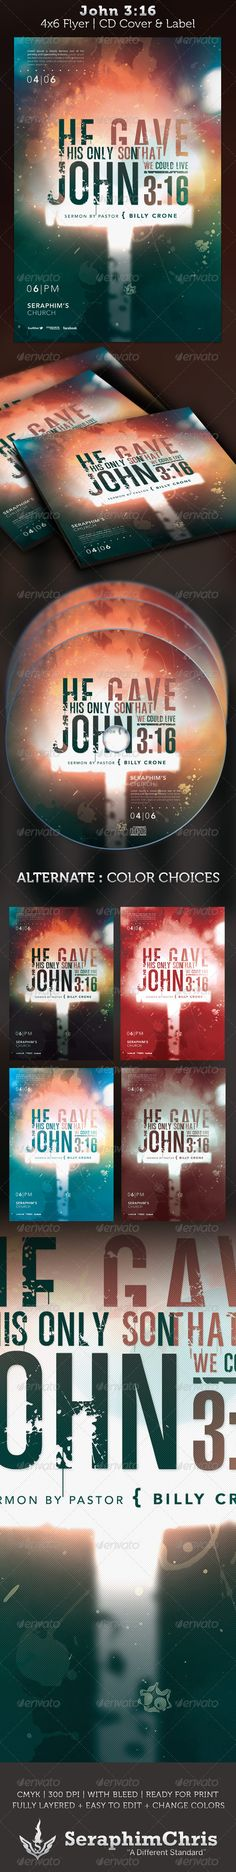 Buy John Typography Flyer and CD Template by SeraphimChris on GraphicRiver. John Church Flyer and CD Artwork Template This file designed for church events that need a modern look. Print Templates, Psd Templates, Cd Artwork, Cd Cover Design, Cd Labels, Concert Flyer, Christian Apparel, Church Events, Charity Organizations